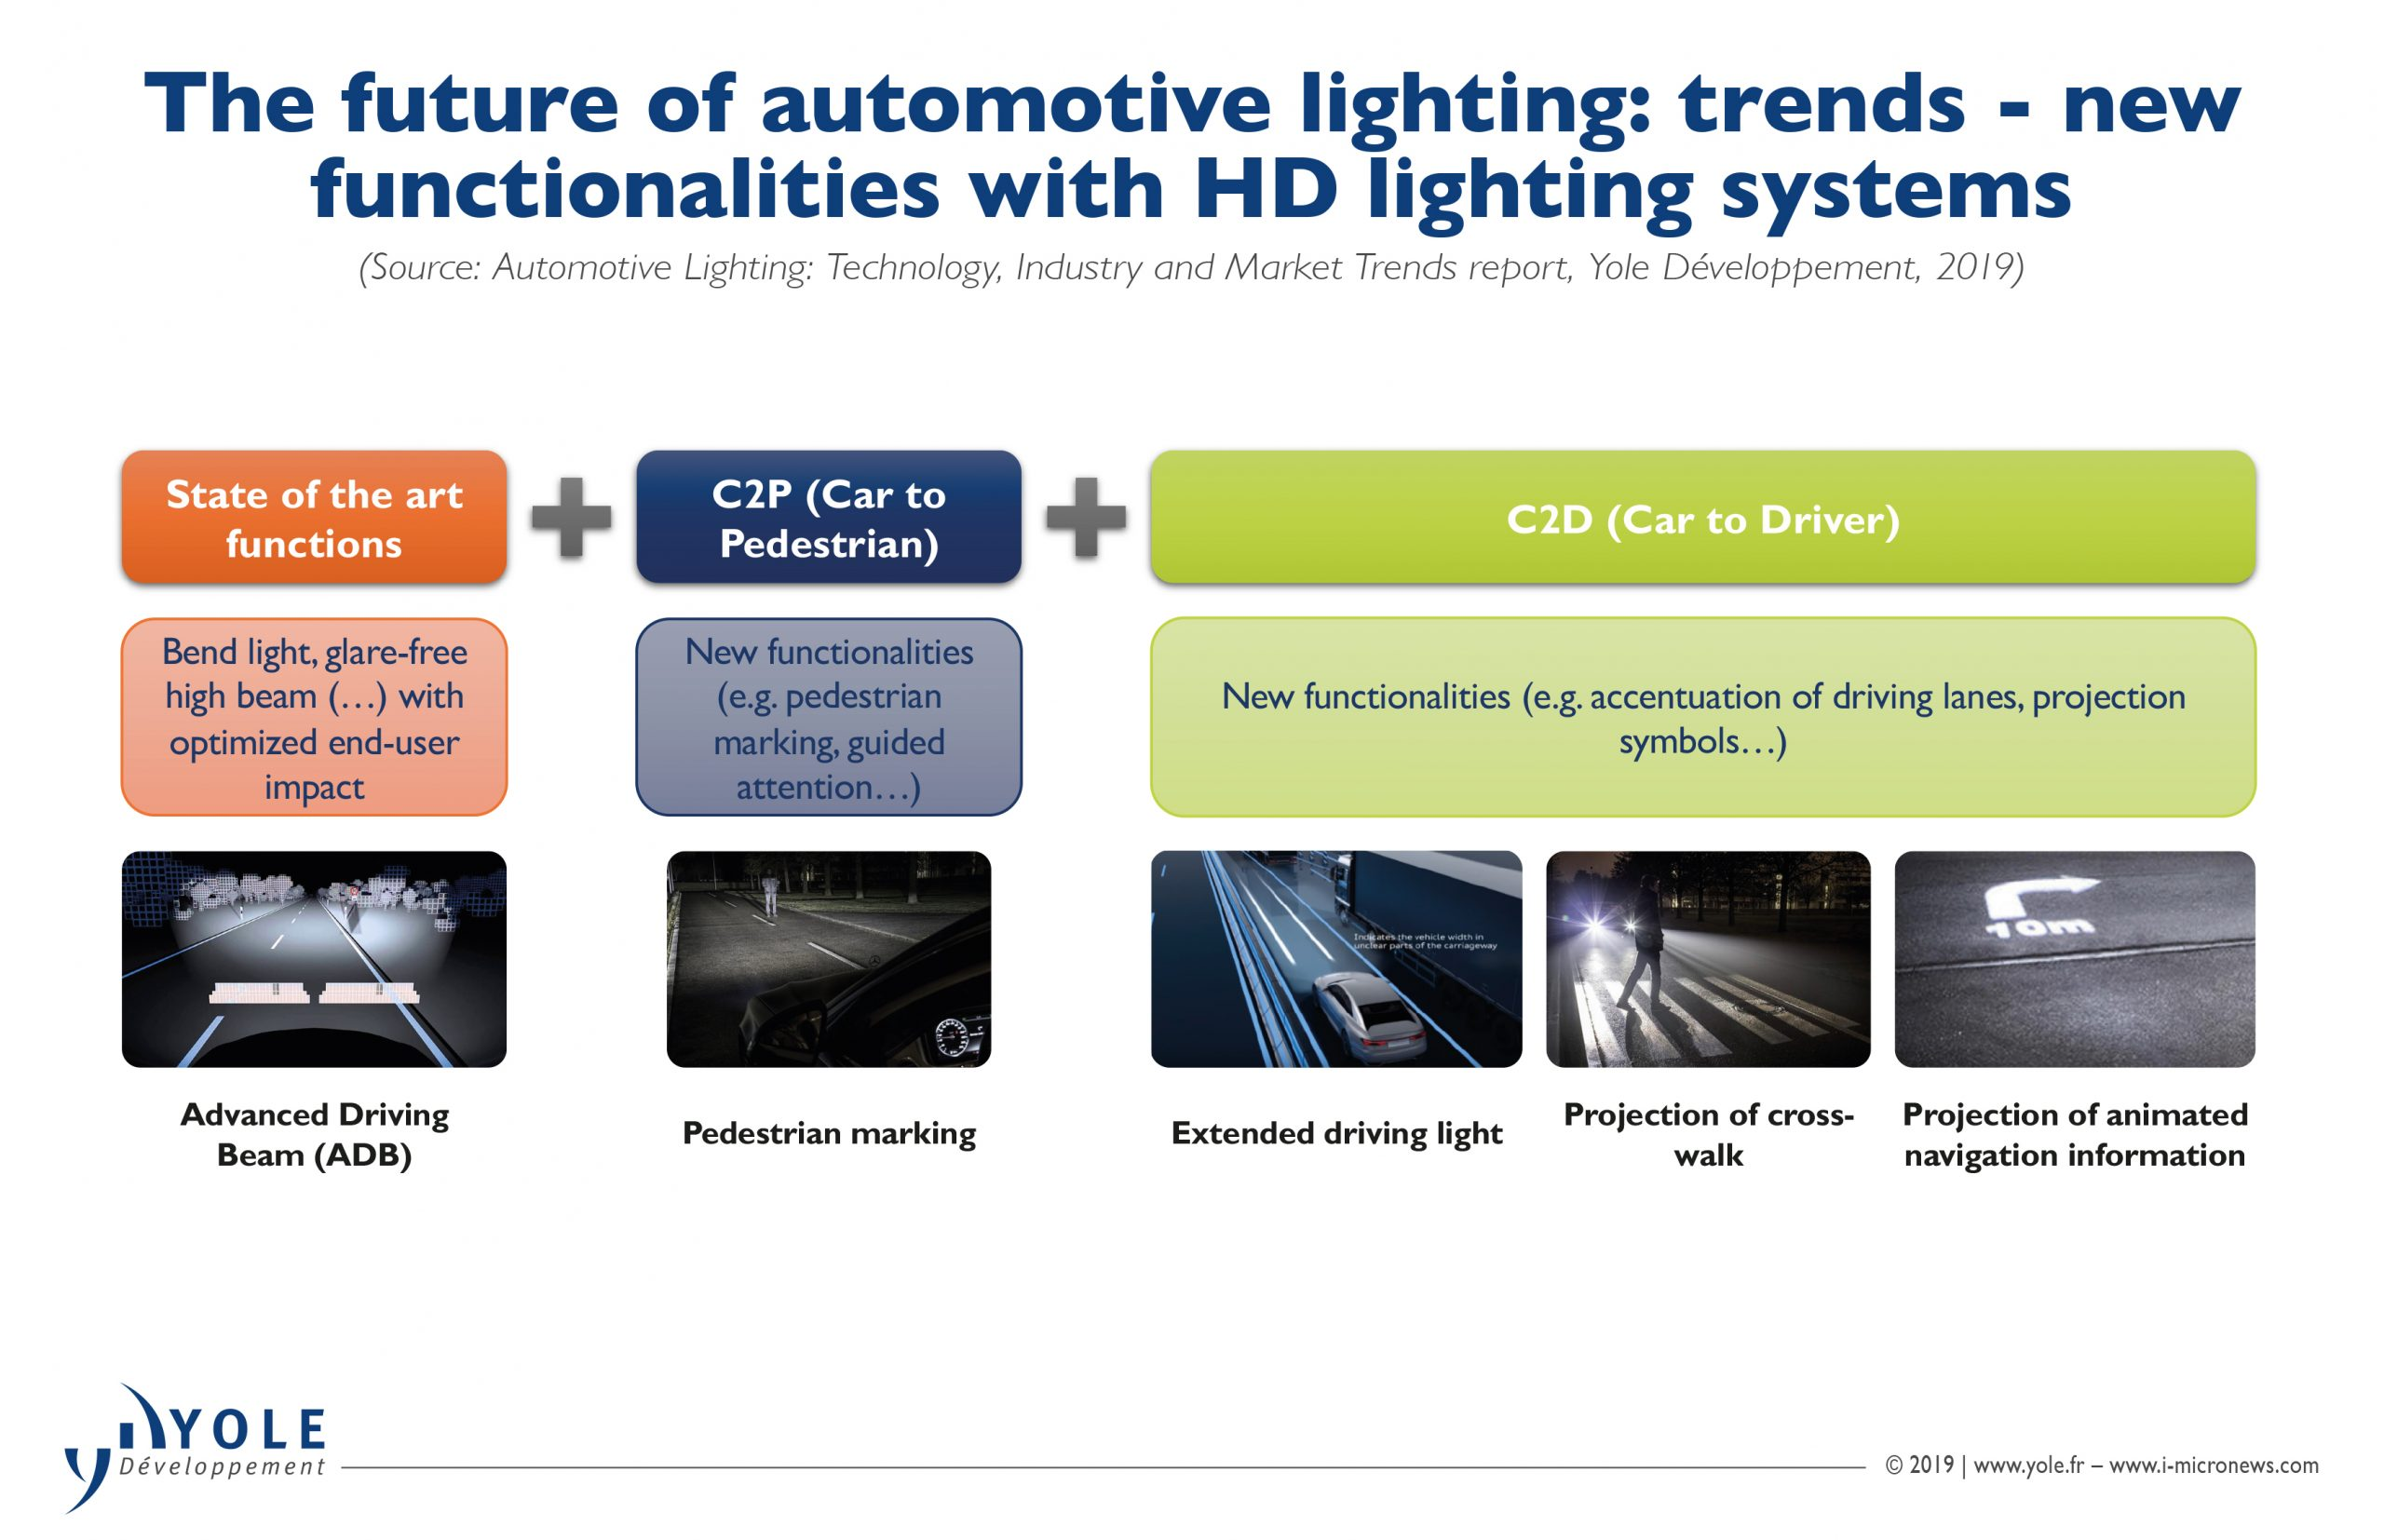 Pixel Led Headlights High Definition Technology Enables New Driving Experiences Semiconductor Digest